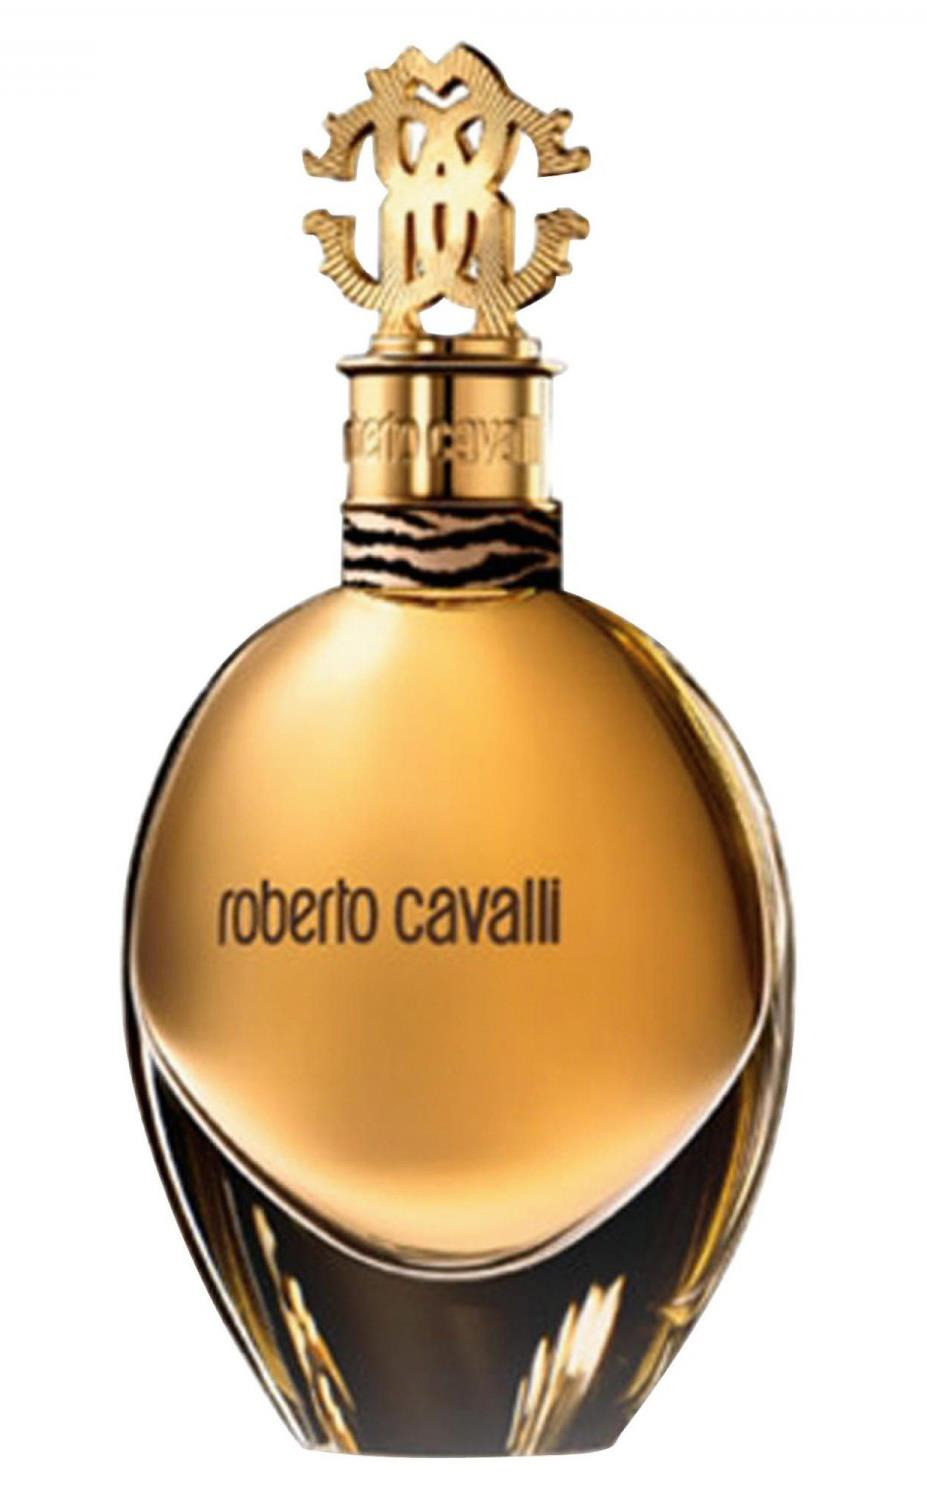 عطر وبرتو كاوالي او د پرفيوم گلد-Roberto Cavali Eau The Parfum Gold